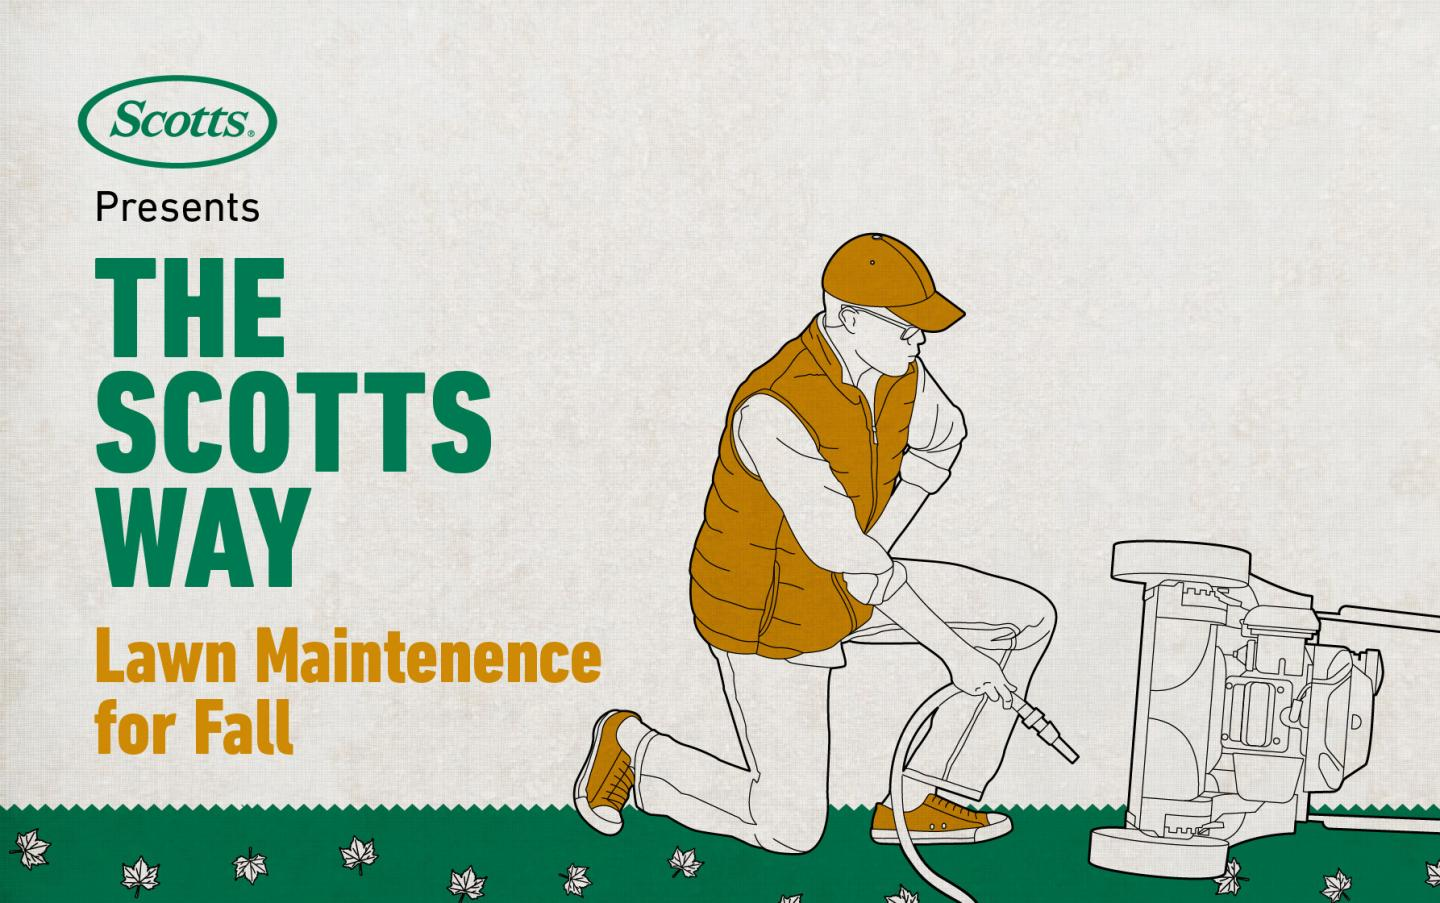 The Scotts Way: Lawn Maintenance for Fall - Illustration of a man connecting hose to a lawnmower for cleaning.